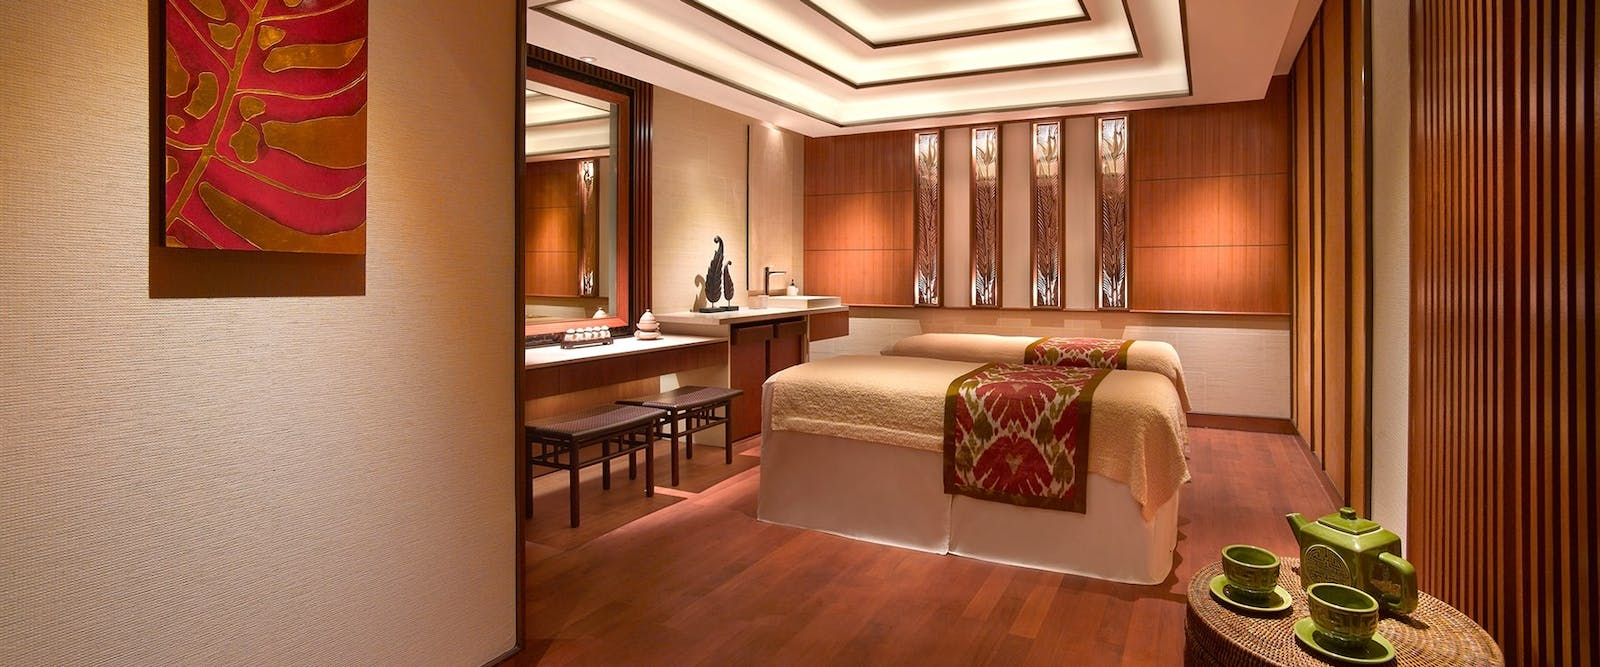 CHI spa couple treatment room at Shangri-La Hotel, Singapore